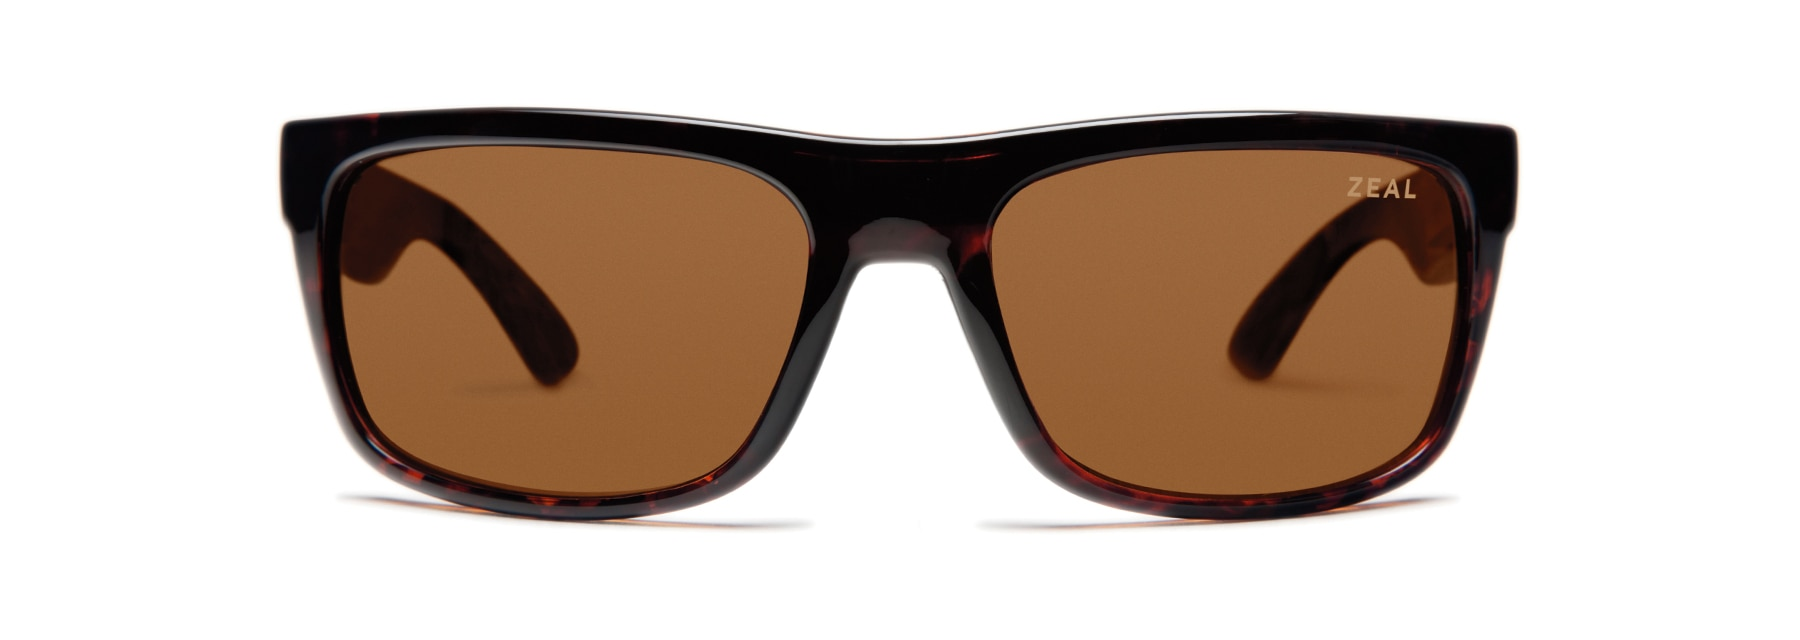 8ad750cd56 Shop ESSENTIAL (Z0001) Sunglasses by Zeal